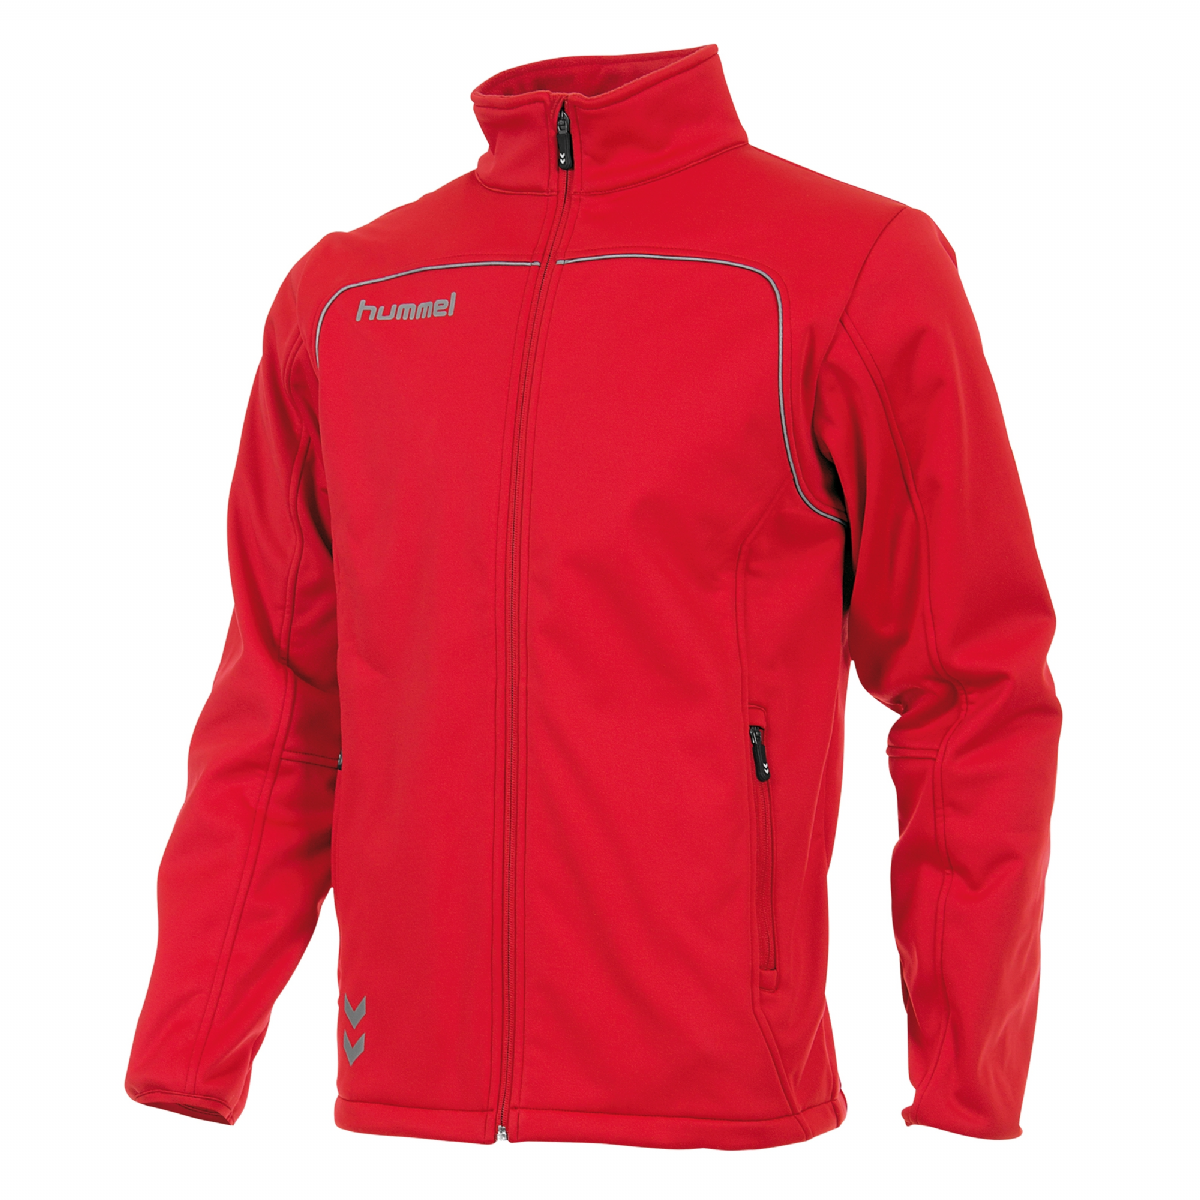 Corporate soft shell